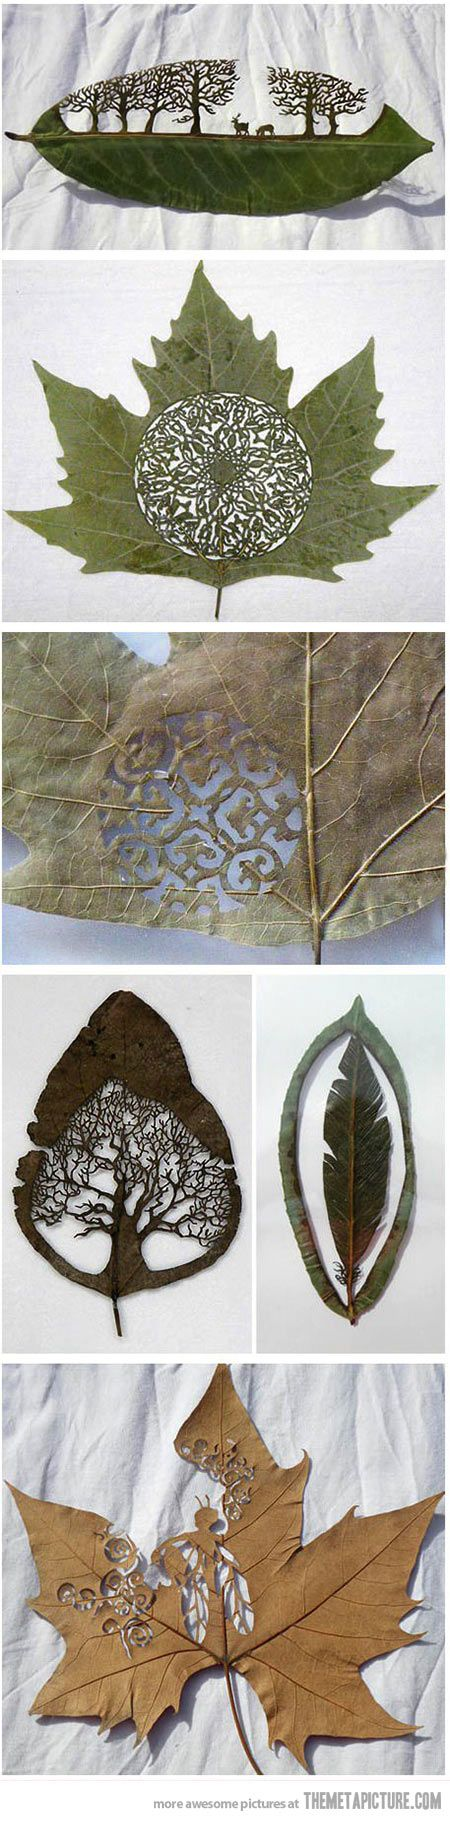 Lorenzo Duran Silva, 43, from Guadalajara, near Madrid, was inspired to create the delicate pieces after watching a caterpillar make holes in a leaf by eating it.